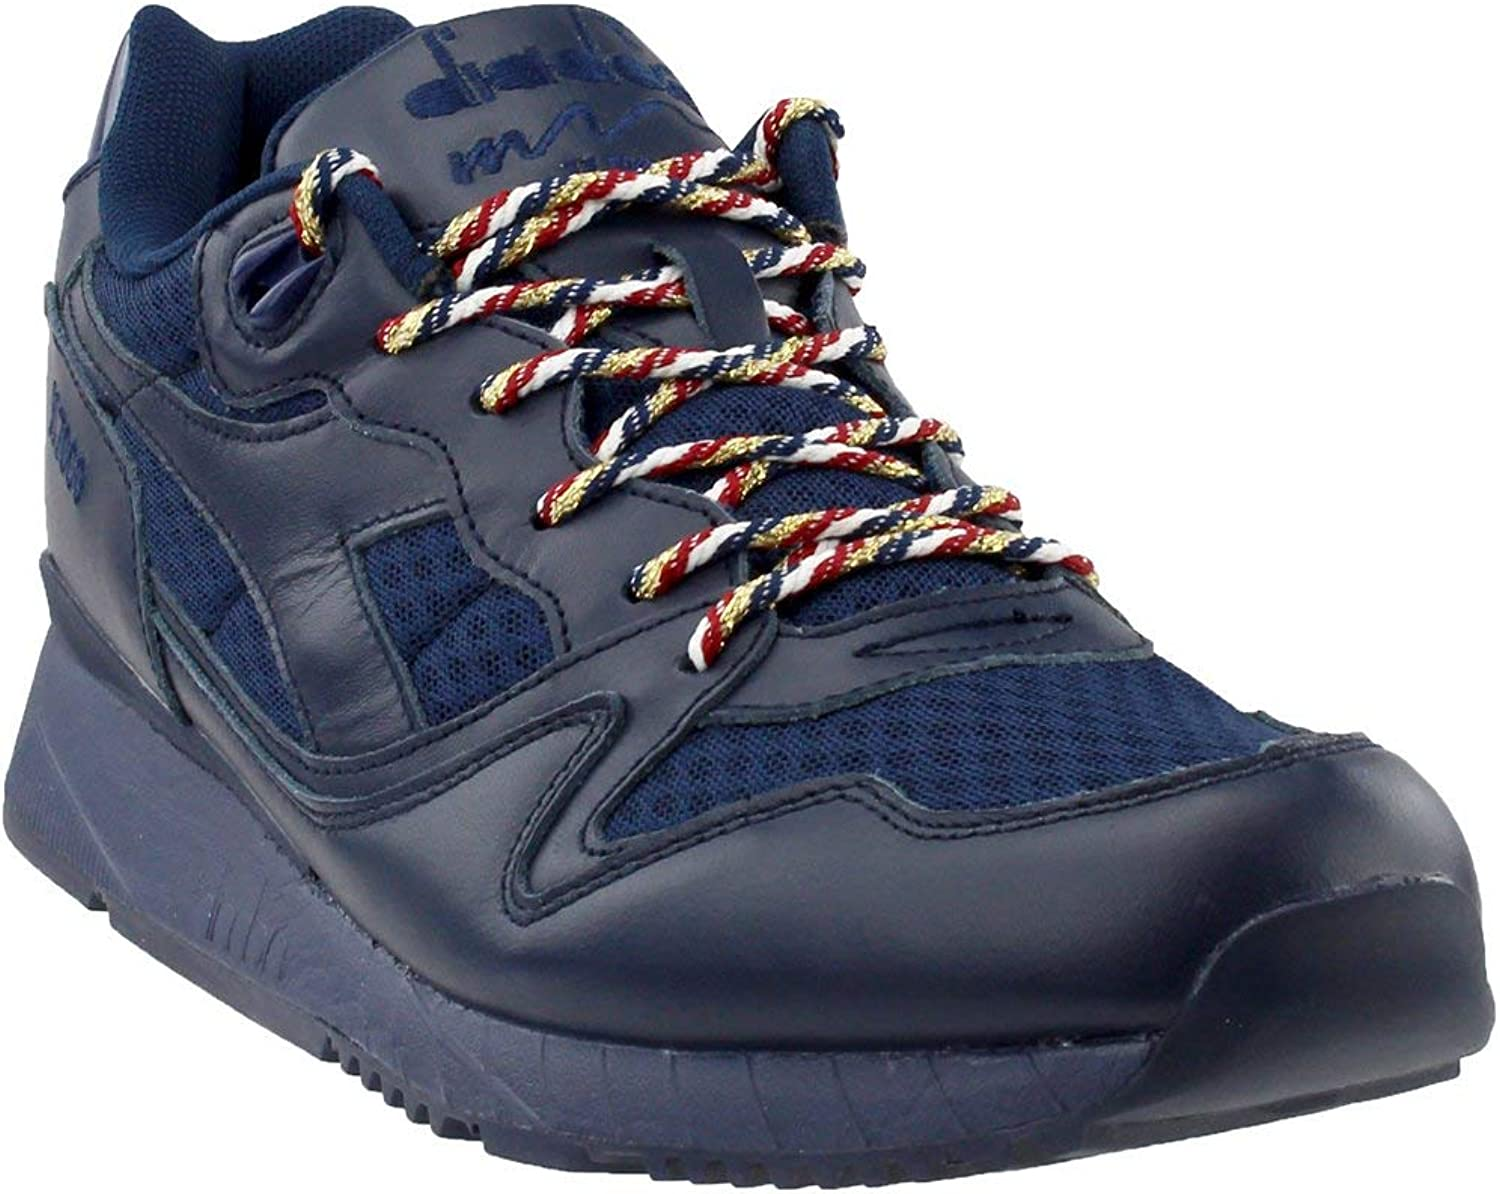 Diadora V7000 USA Mens bluee Leather Lace Up Sneakers shoes